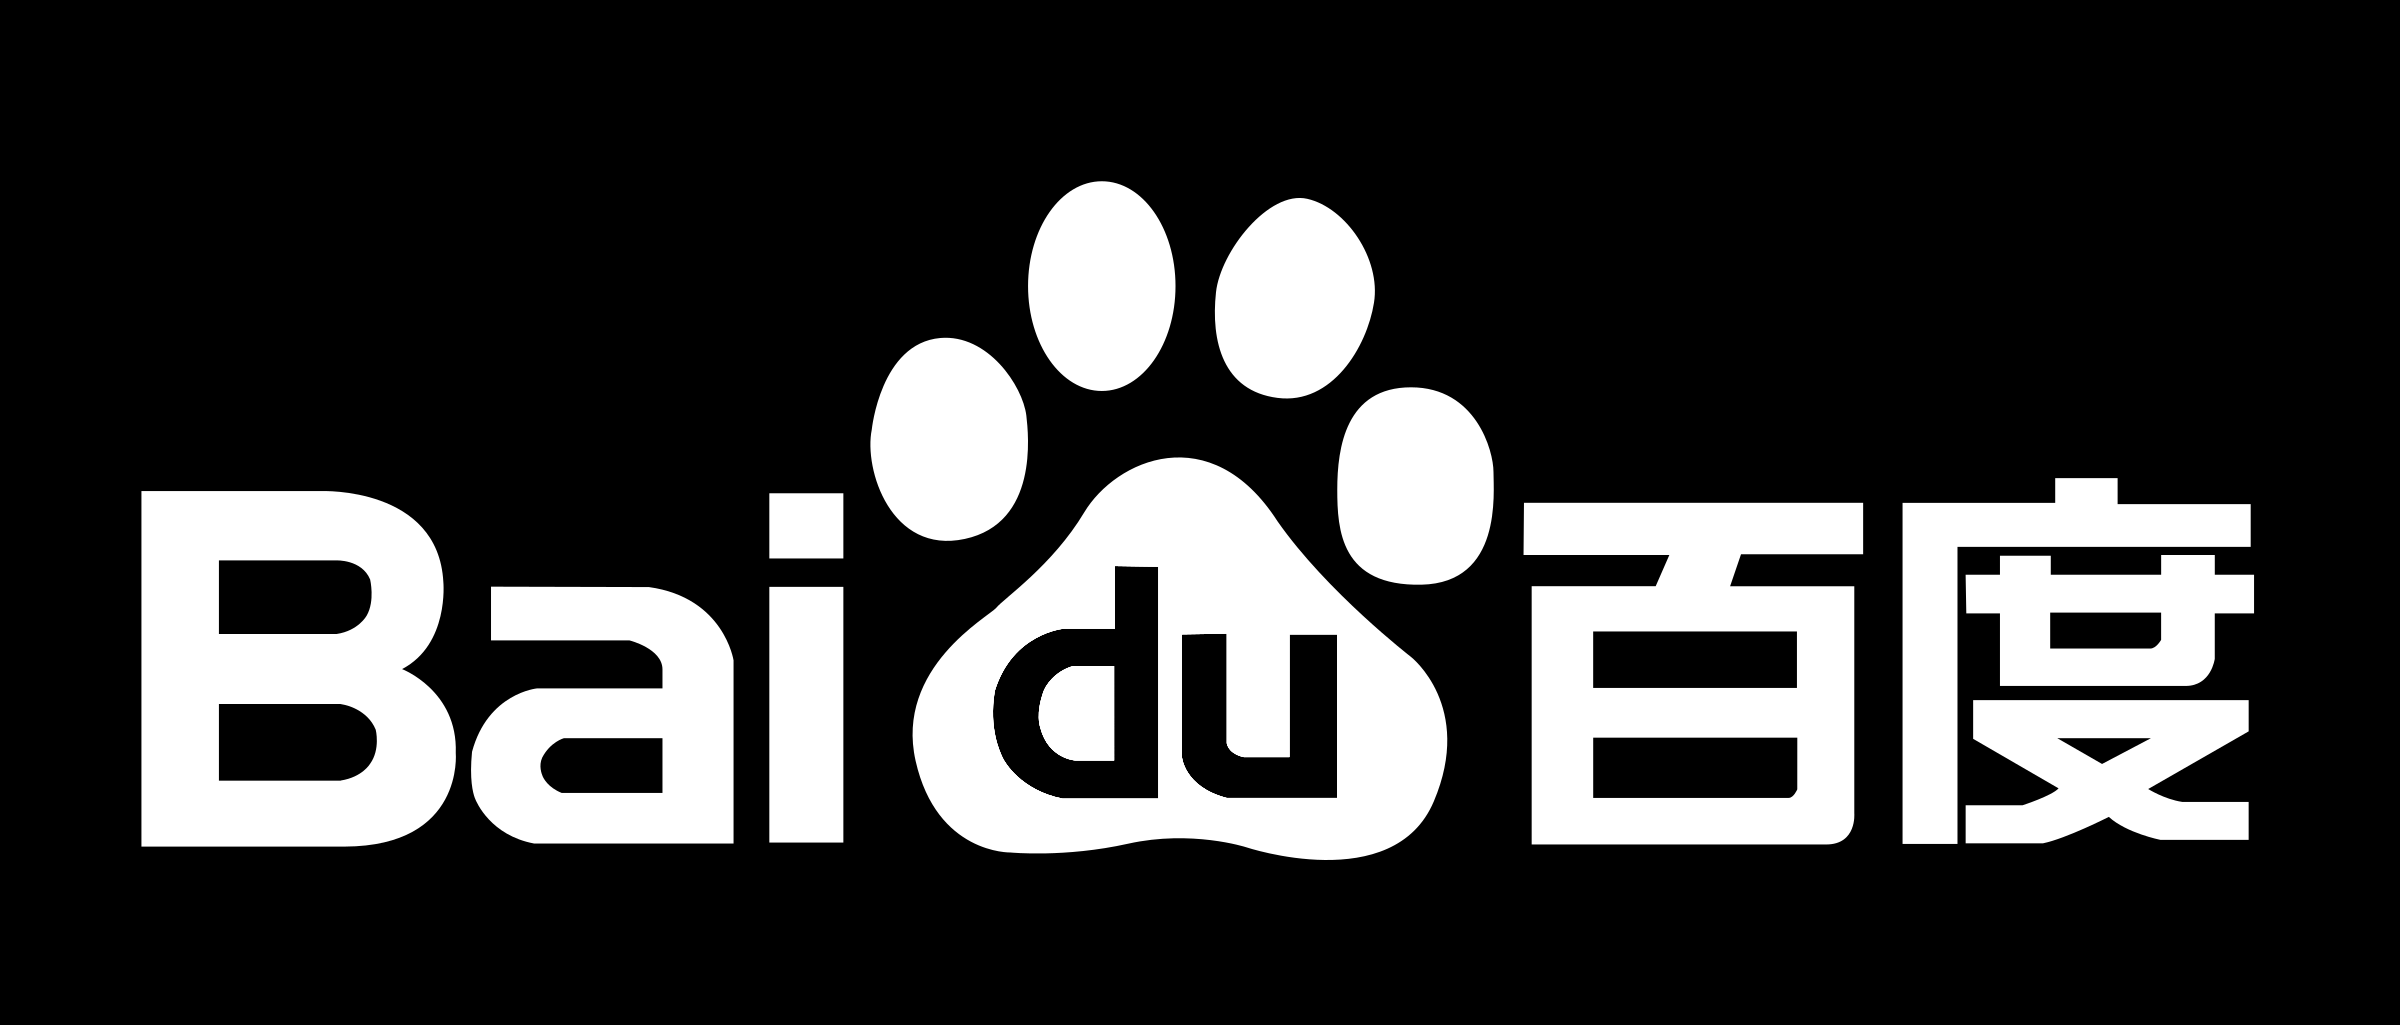 Baidu Logo - Baidu Logo PNG Transparent & SVG Vector - Freebie Supply